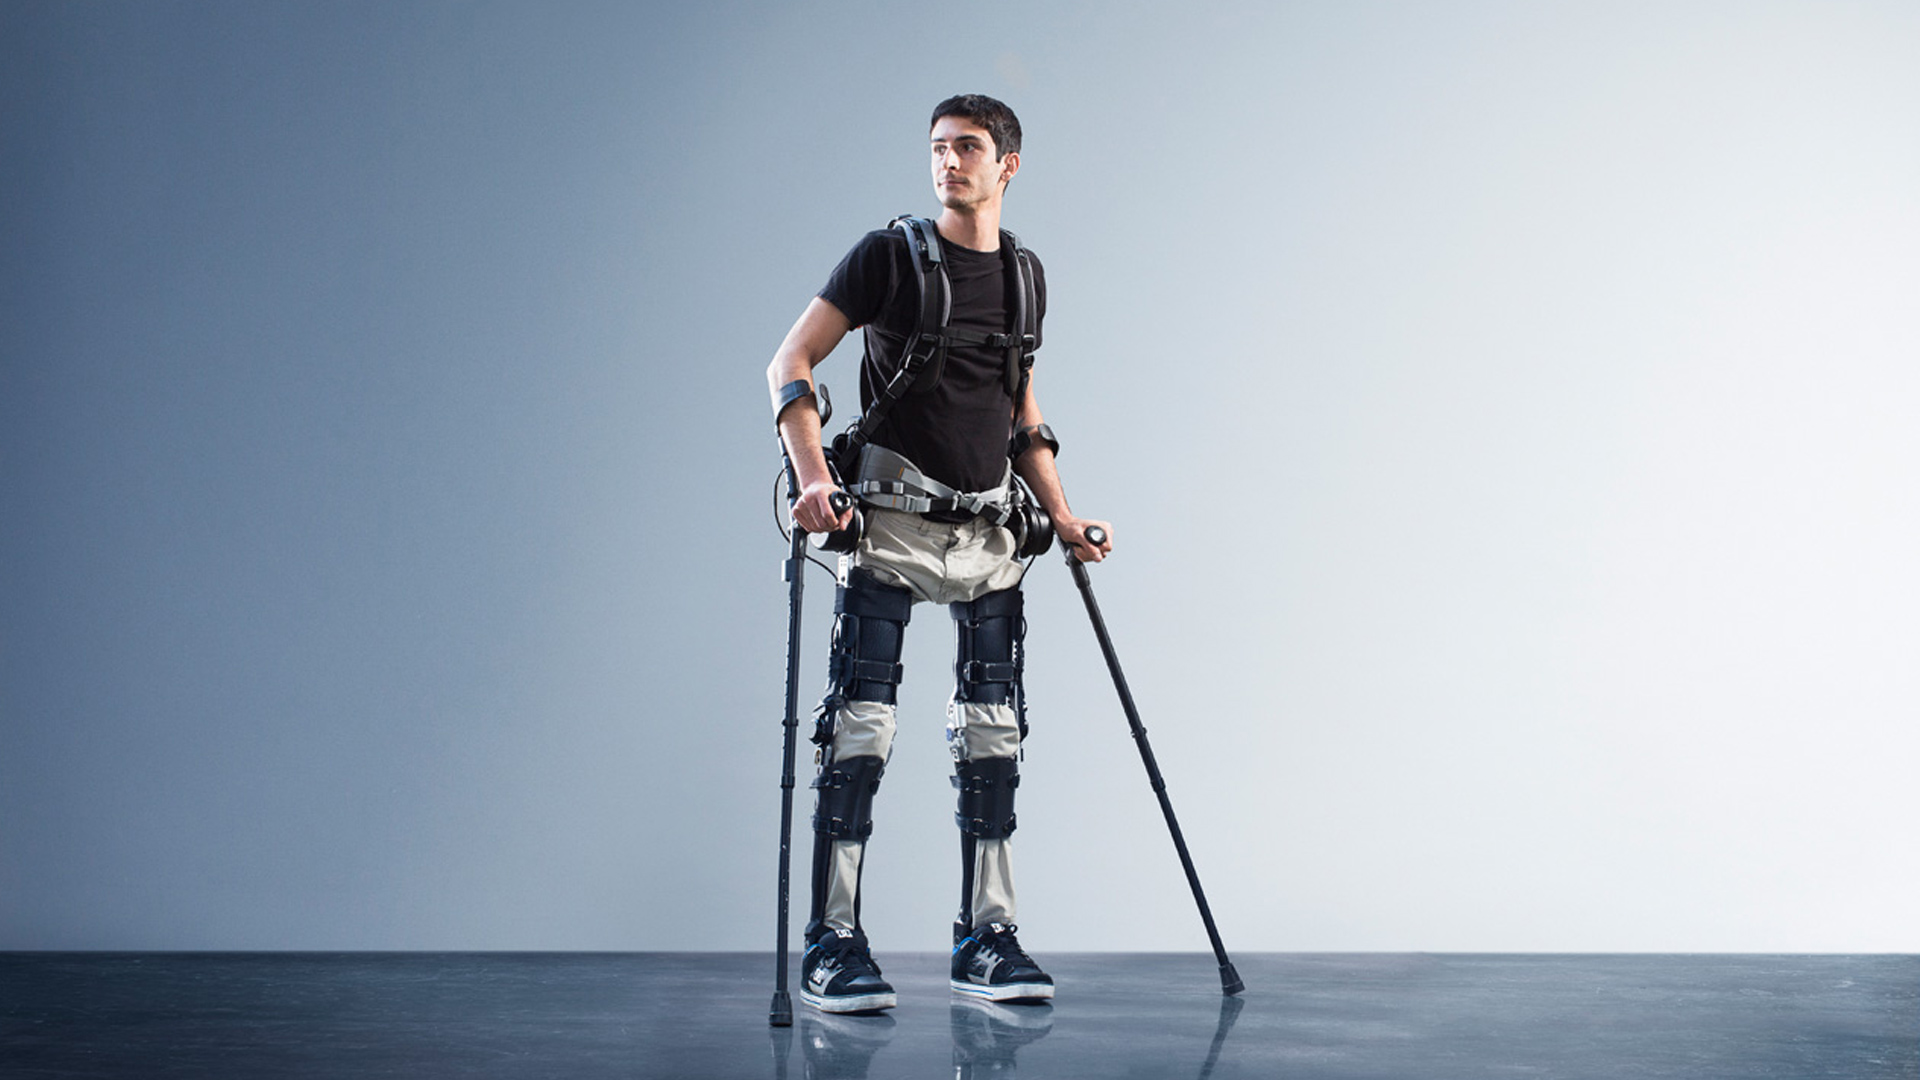 Video: Phoenix exoskeleton aims for cheaper price, agile experience (Tomorrow Daily 308)